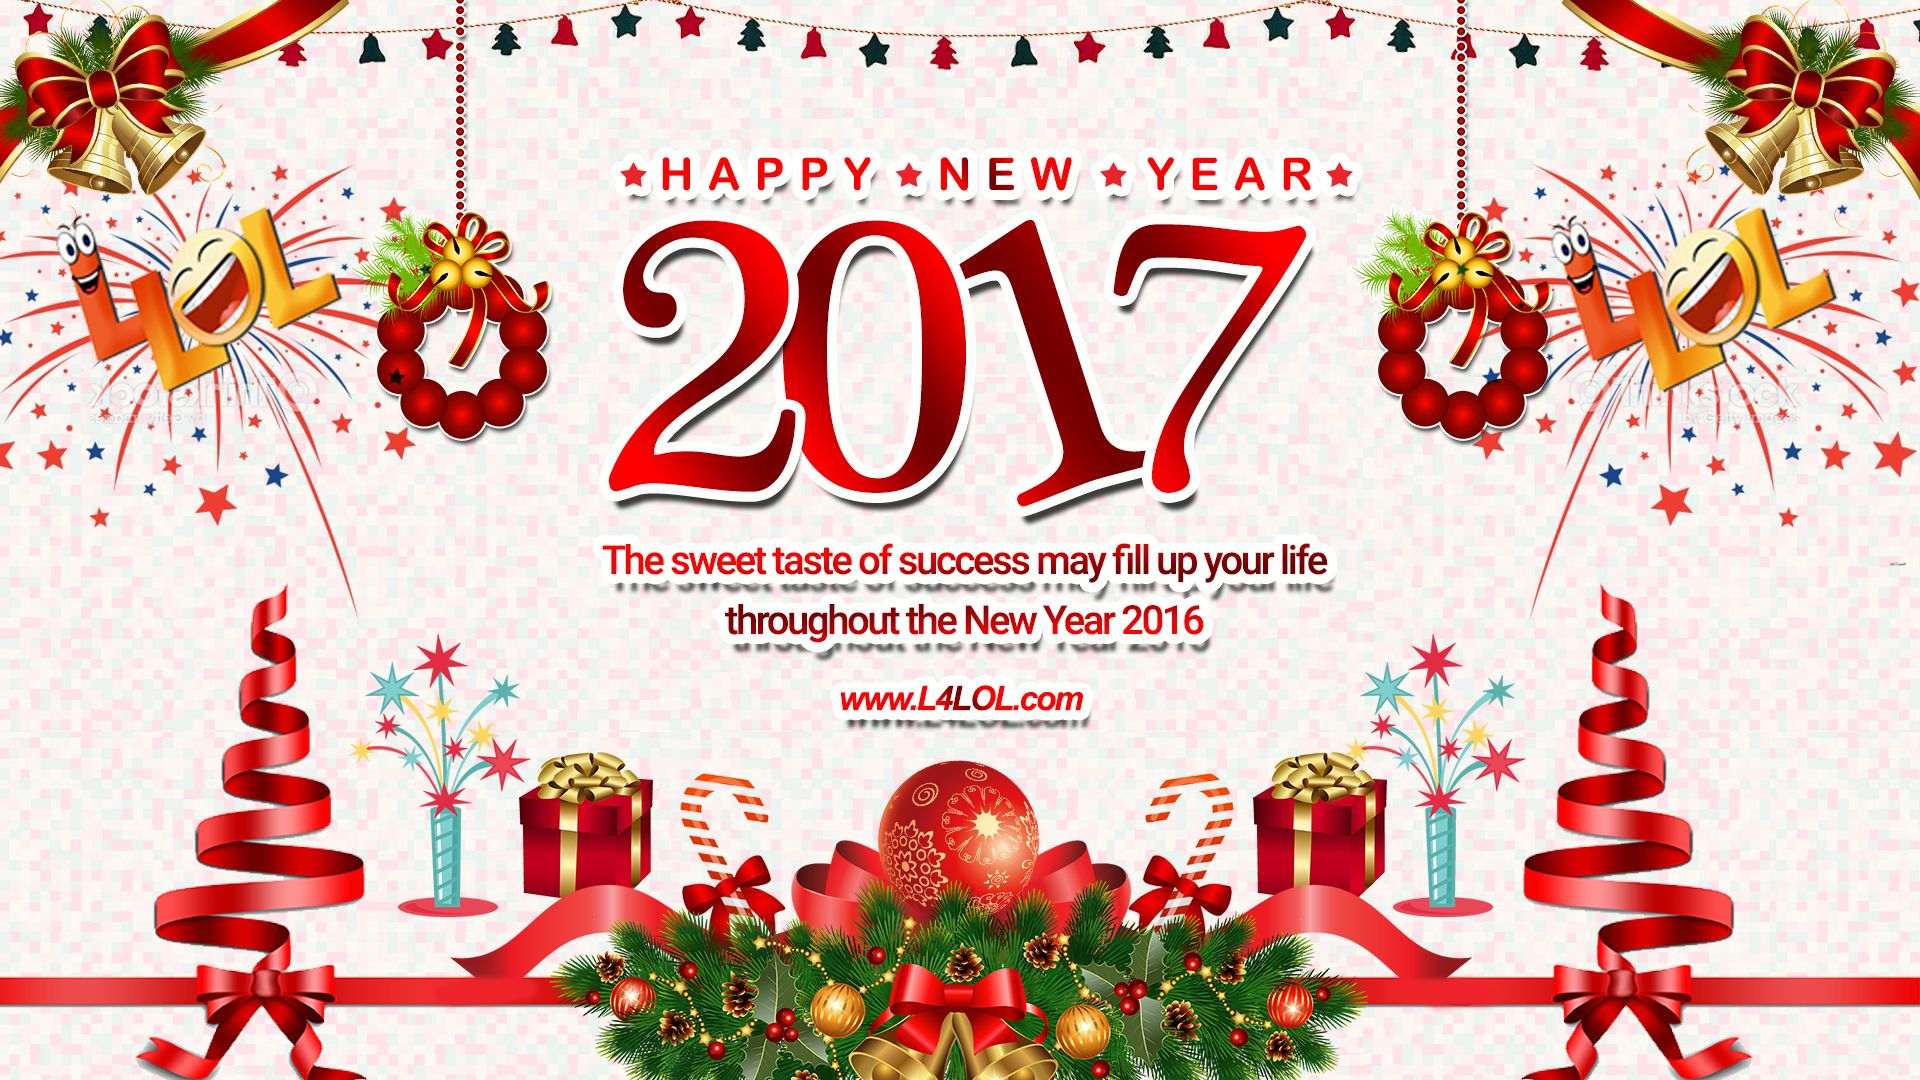 Happy New Year 2017 GIF Images and Share Download Free  http